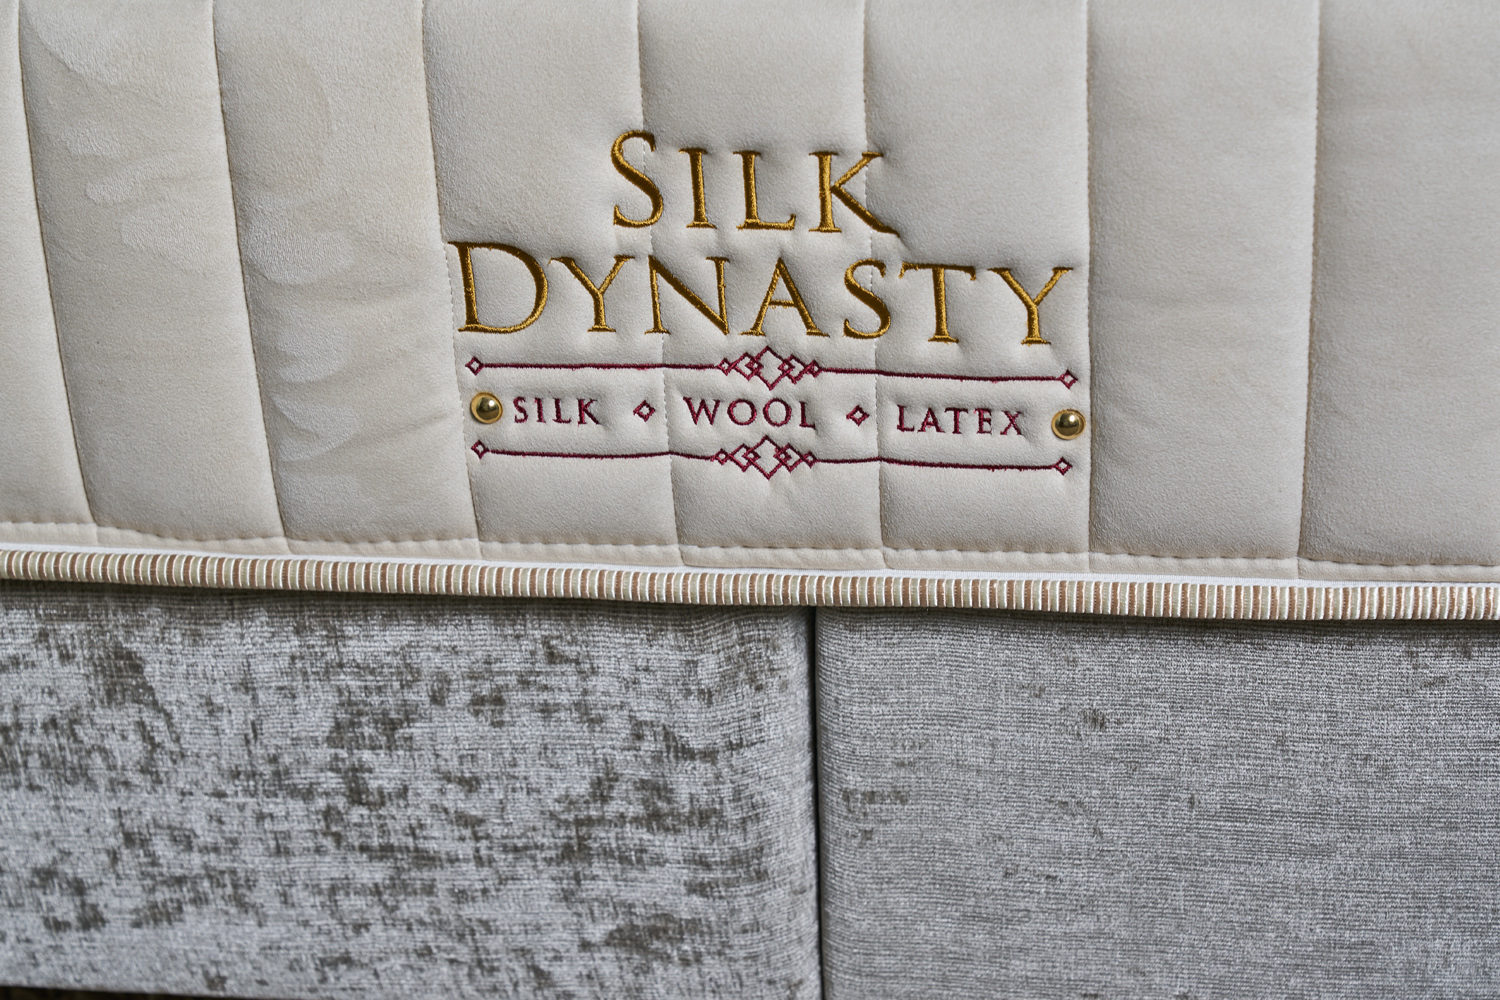 getha mattress silk dynasty4 Home Minimalism